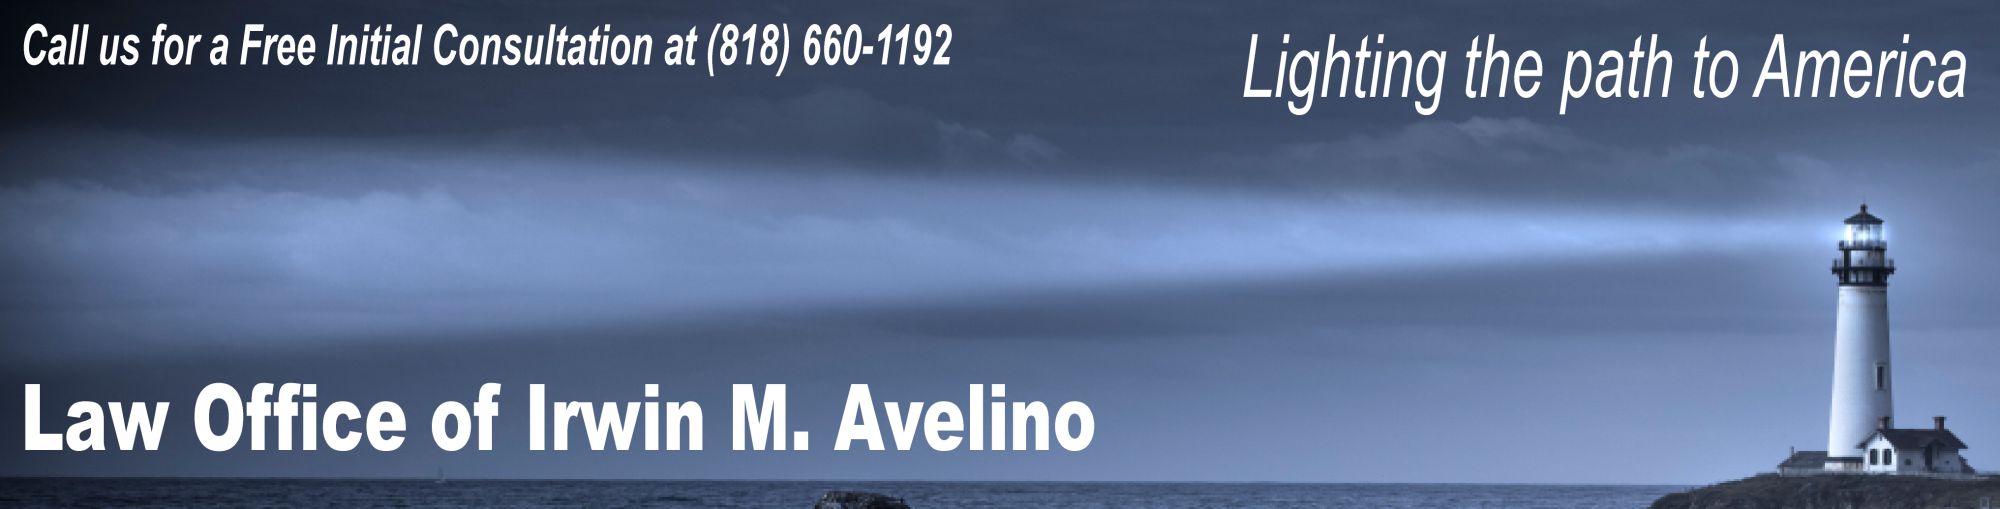 Law Office of Irwin M. Avelino